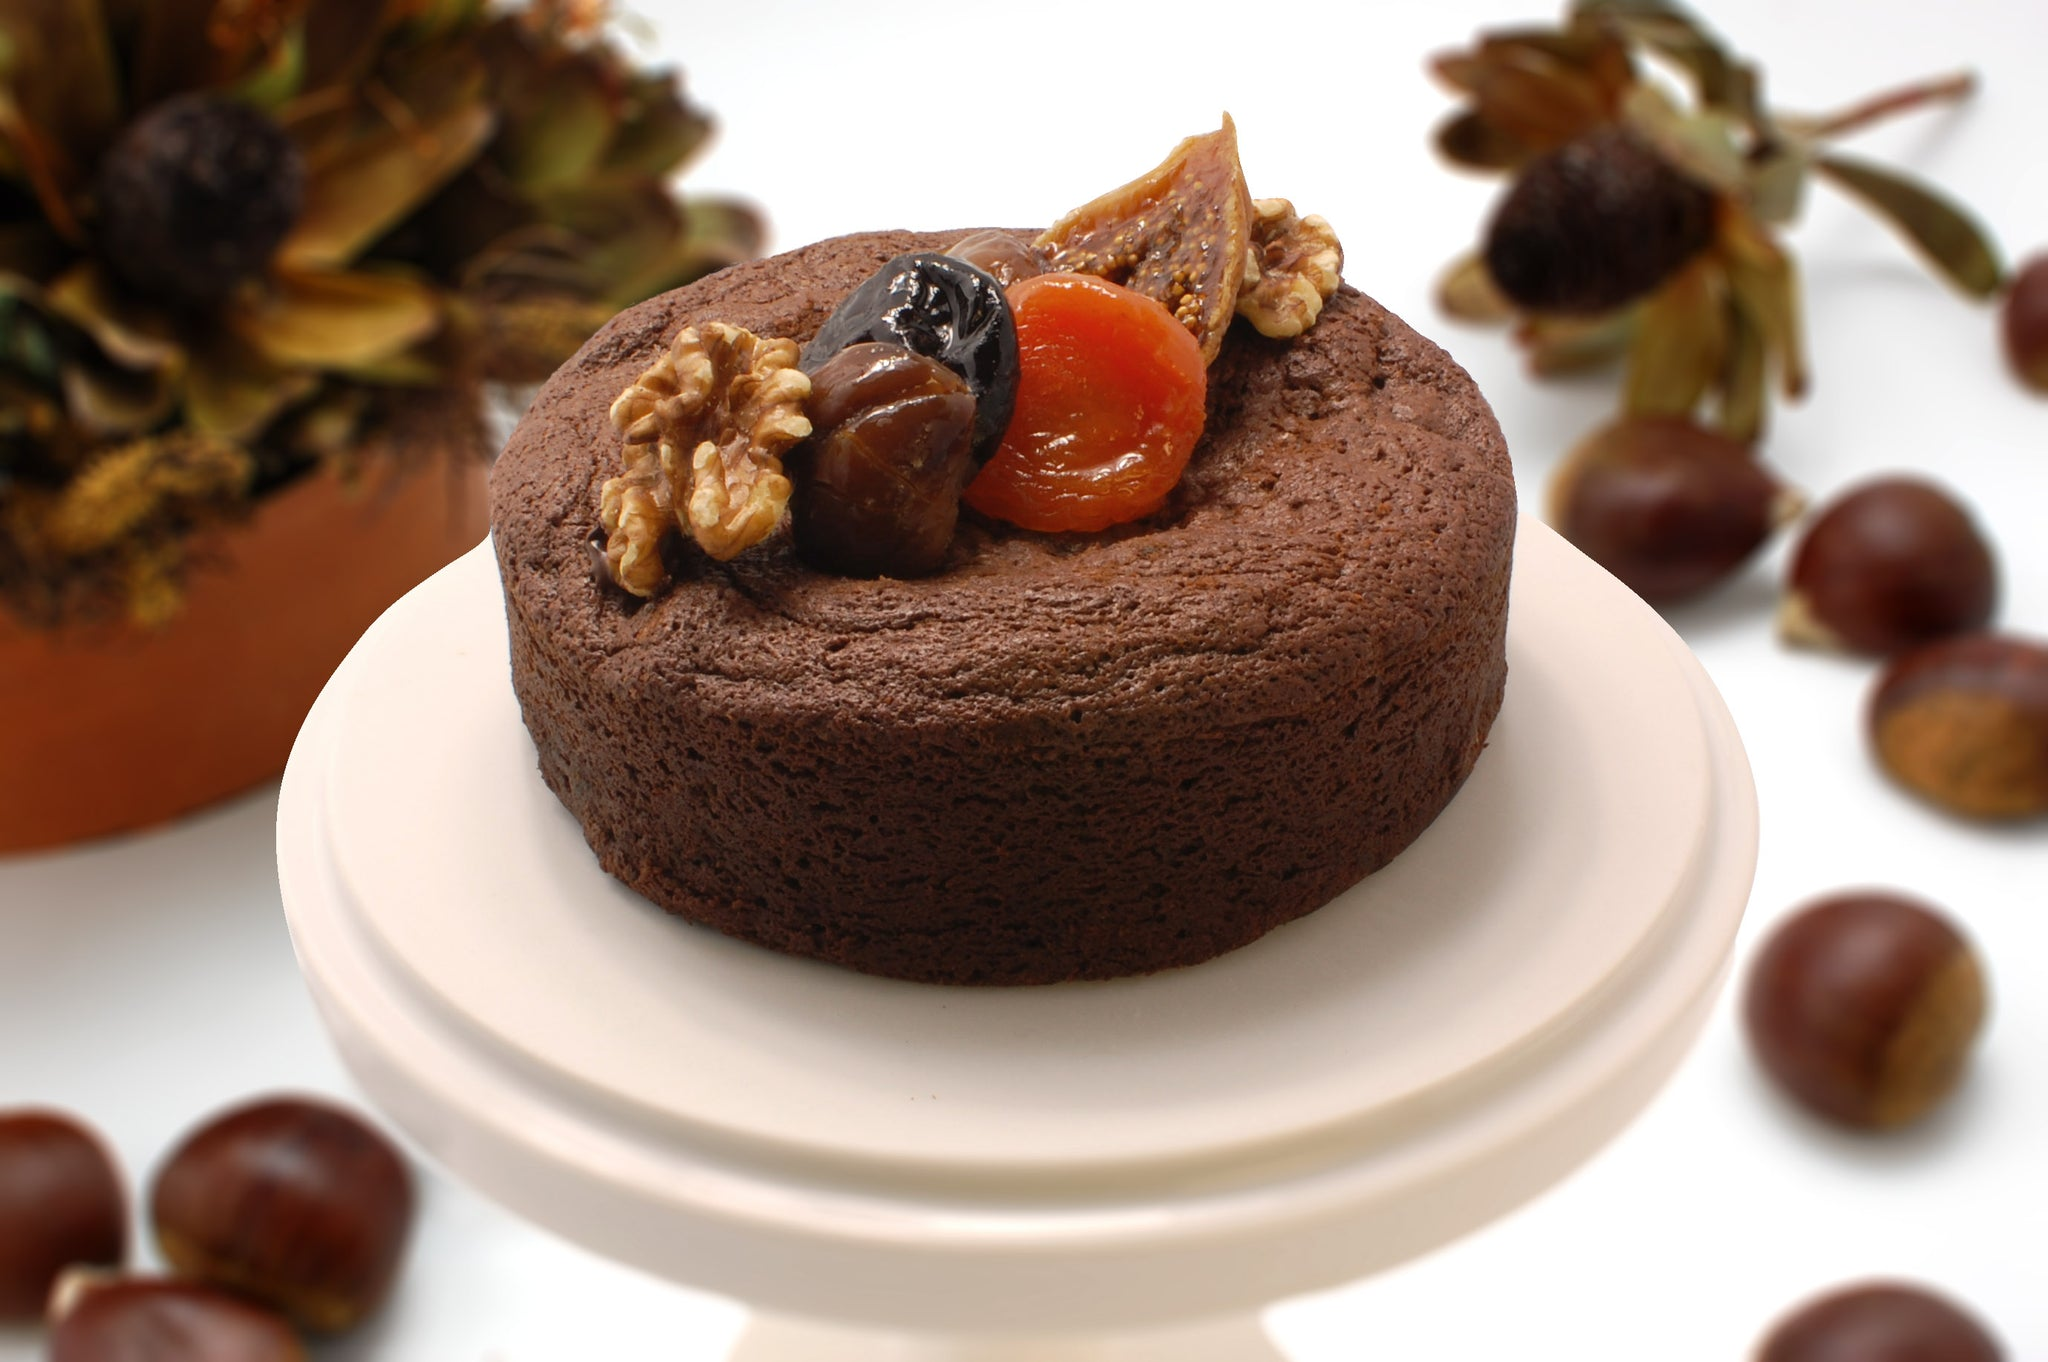 Autumn Chocolate Chestnut Cake